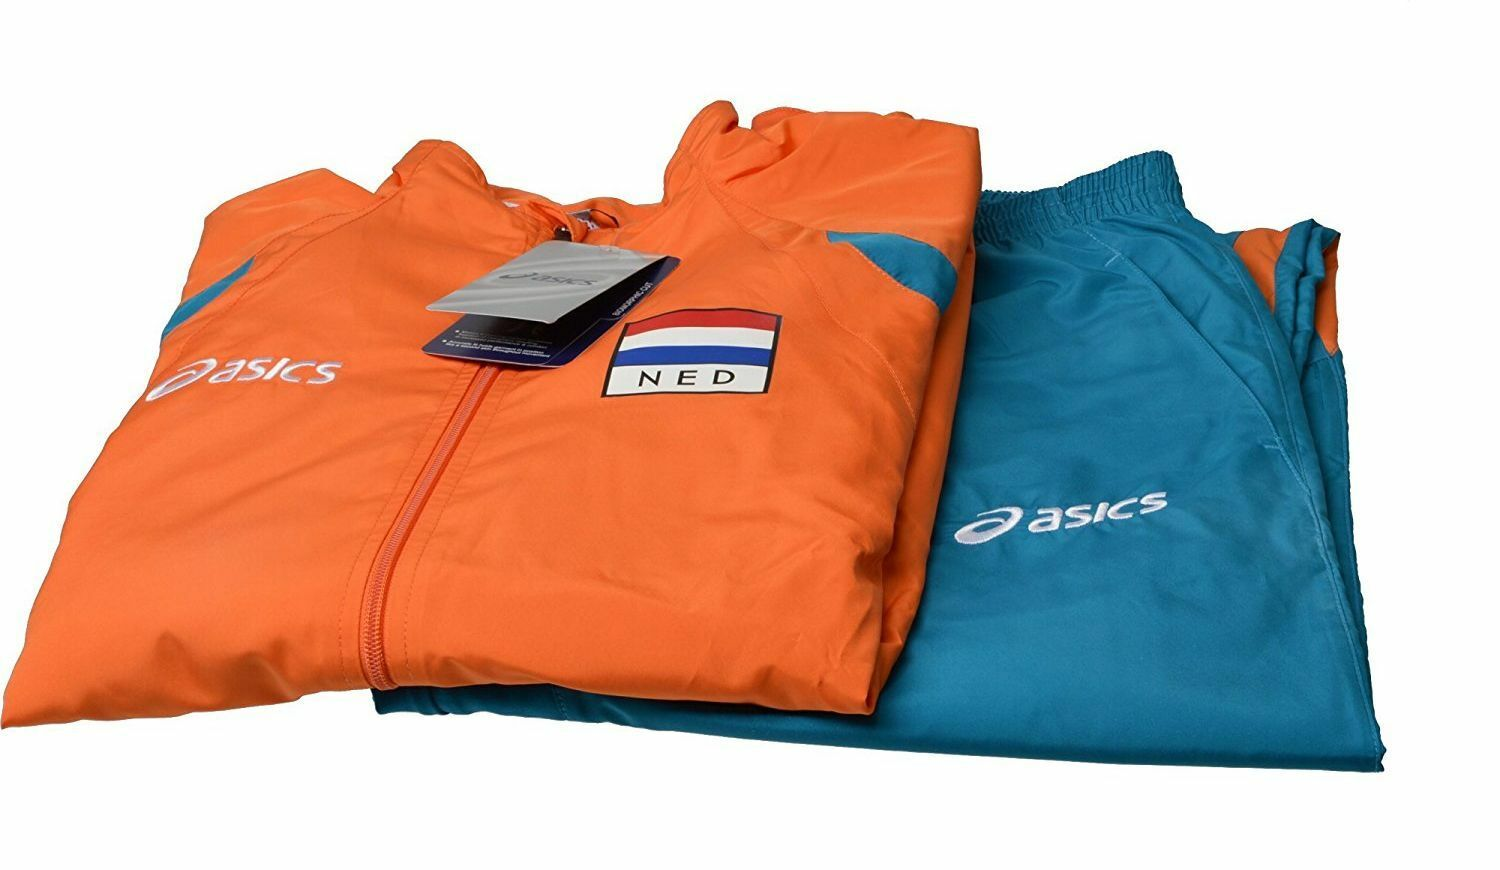 Asics 599406S 0532 Team Warmup Holland Herren Herren Herren Training Fitness Suit Anzug XXXL 062ef5